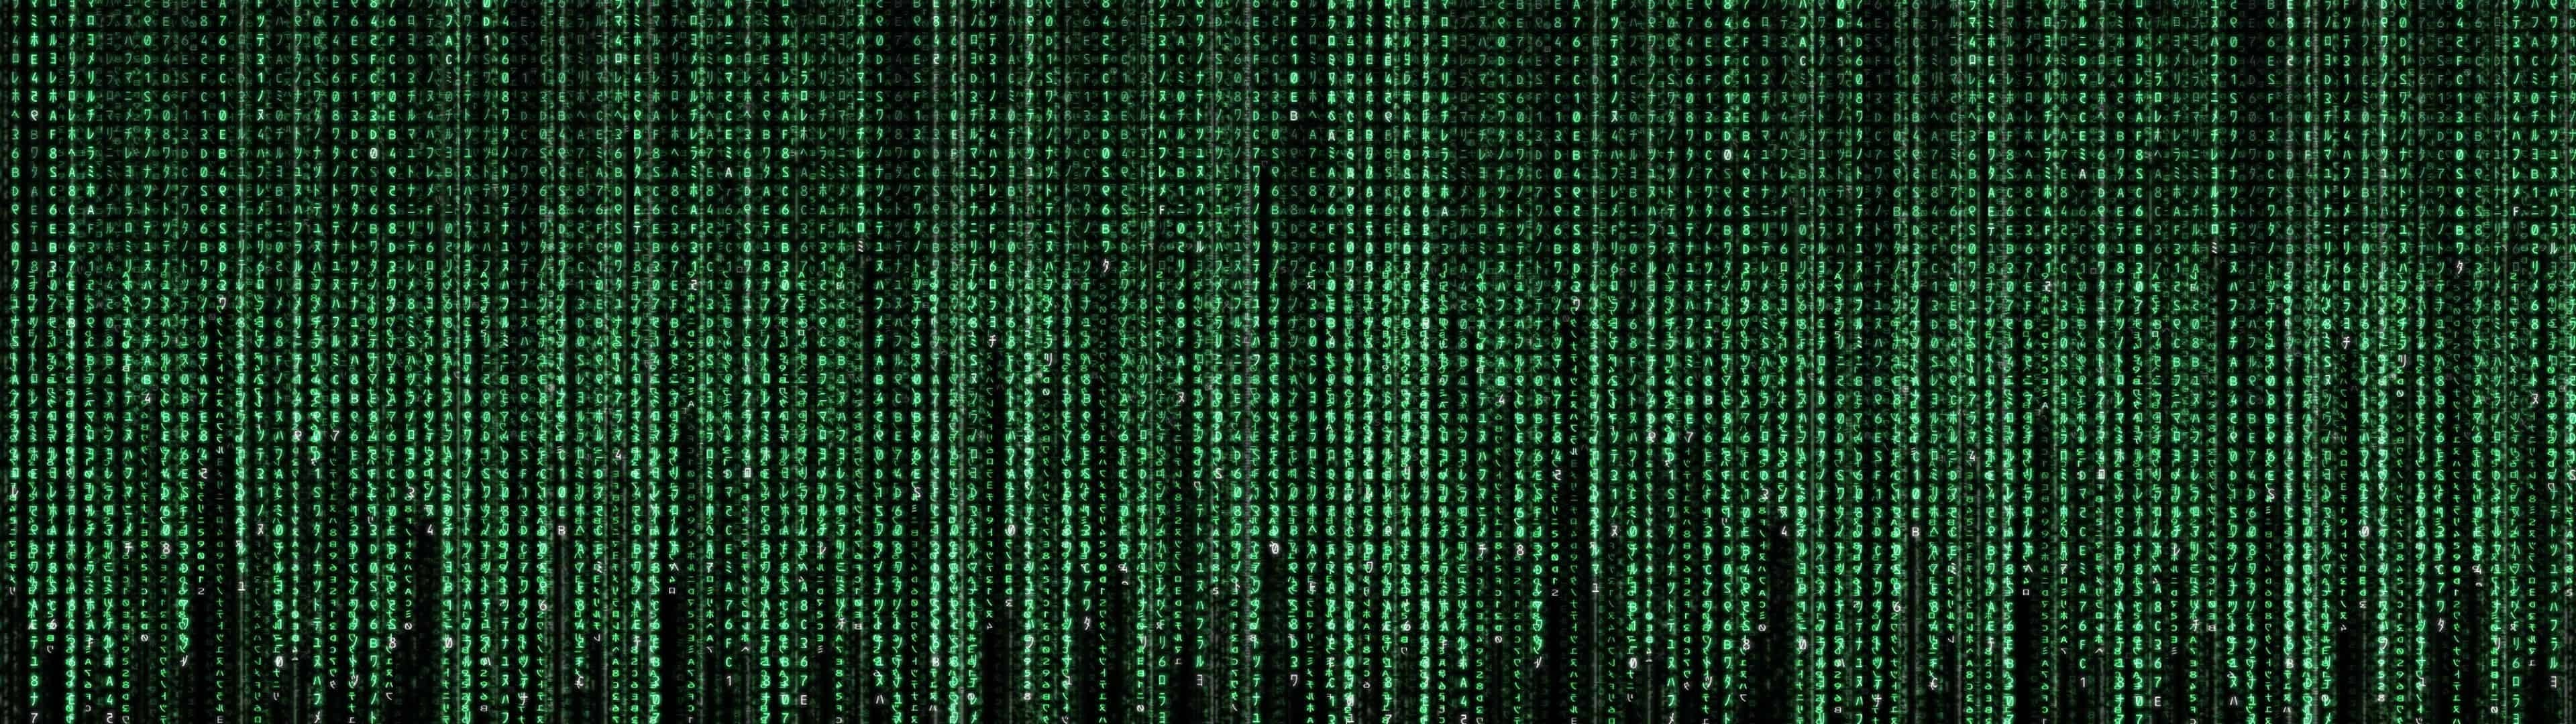 The Matrix Code Dual Monitor Wallpaper Pixelz.jpg desktop wallpaper free download